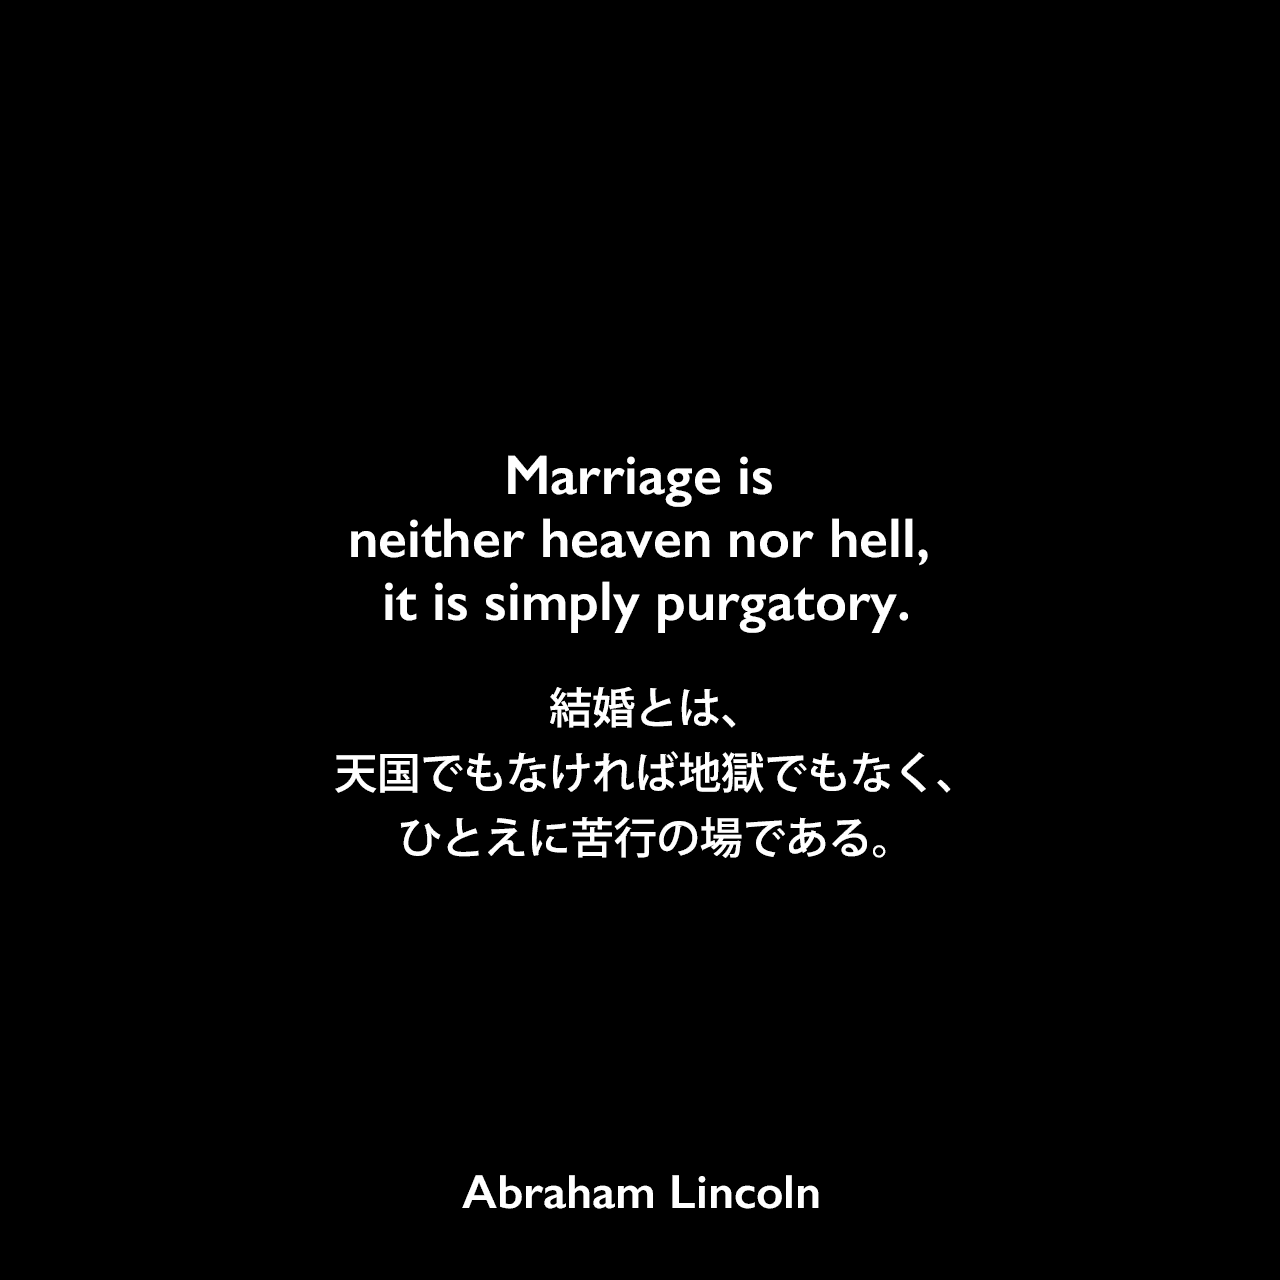 Marriage is neither heaven nor hell, it is simply purgatory.結婚とは、天国でもなければ地獄でもなく、ひとえに苦行の場である。Abraham Lincoln